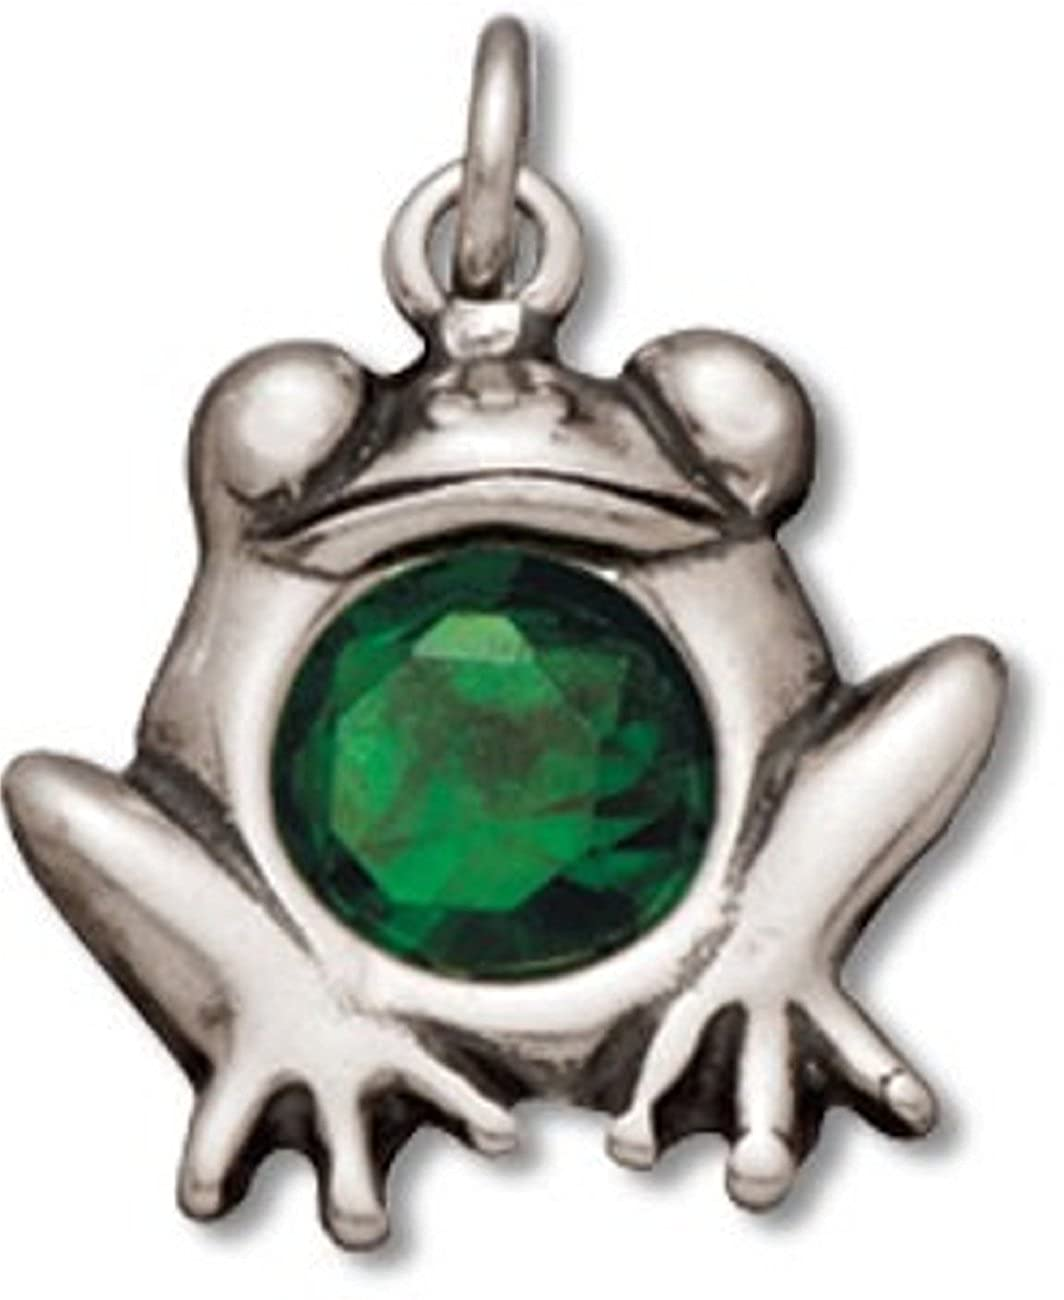 Sterling Silver Charm Bracelet With Attached Green Cubic Zirconia Sitting Toad Frog Charm